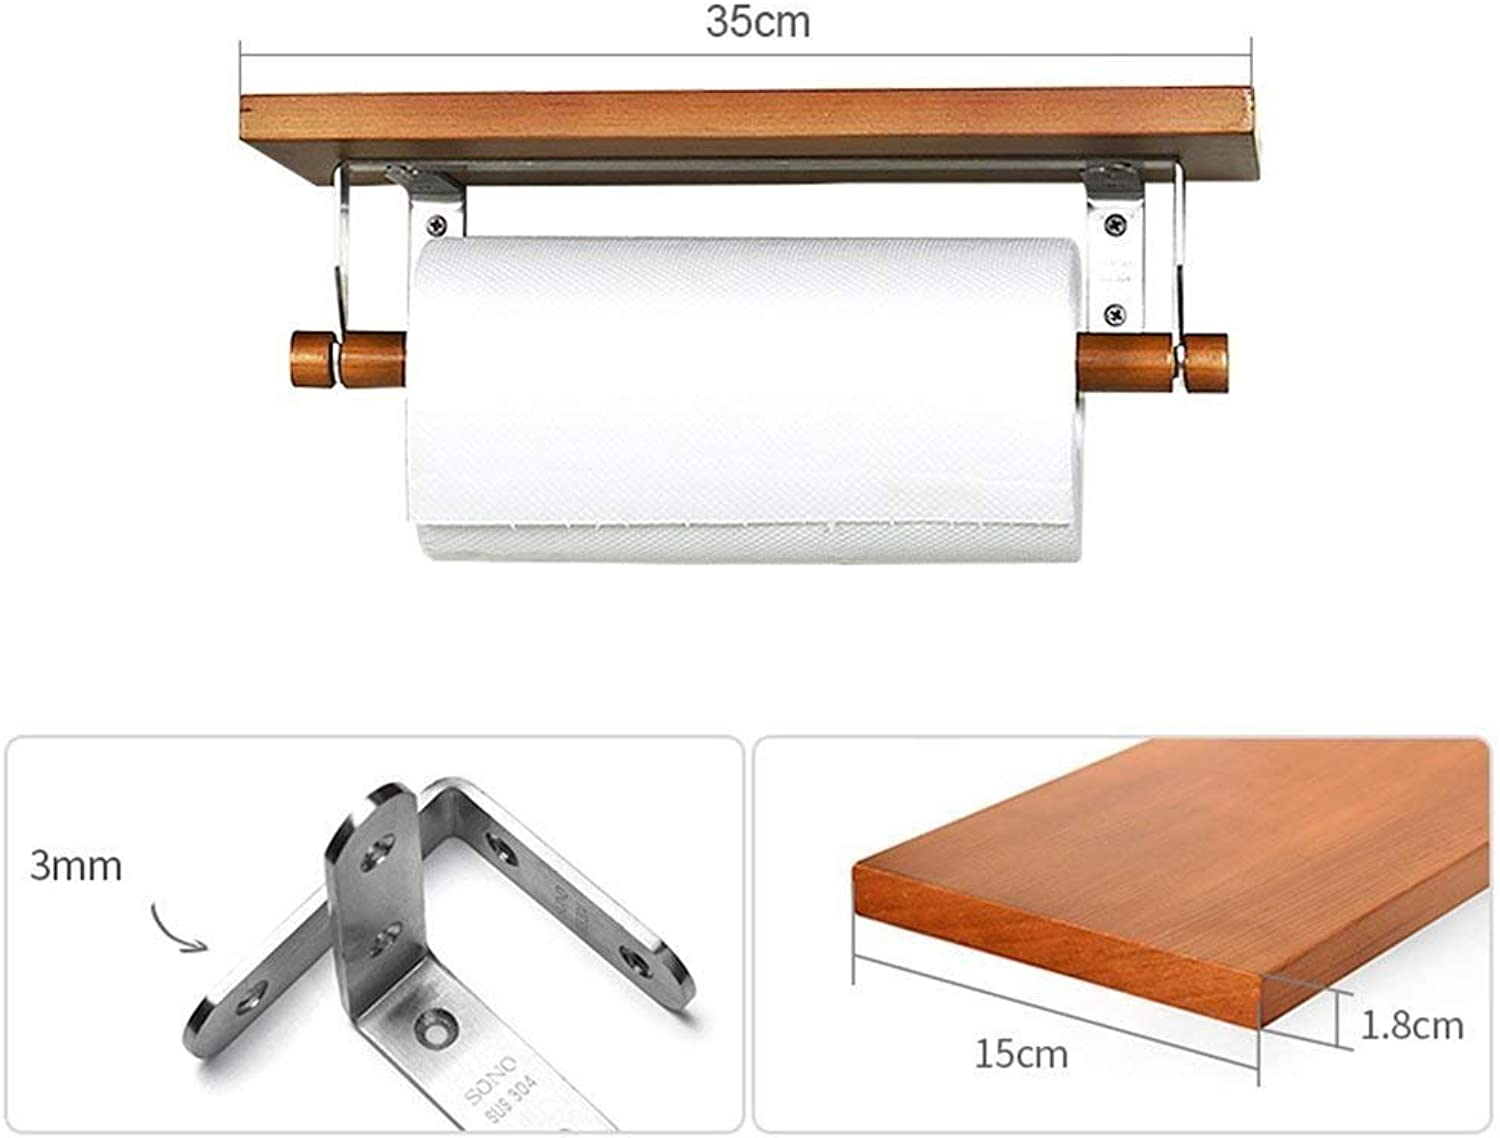 Bathroom Toilet roll Holder for The Kitchen Wall 0718075 Storer Fabrics, Wood 2 color, 2 Sizes (The color The color of The Wood, Size  35cm)